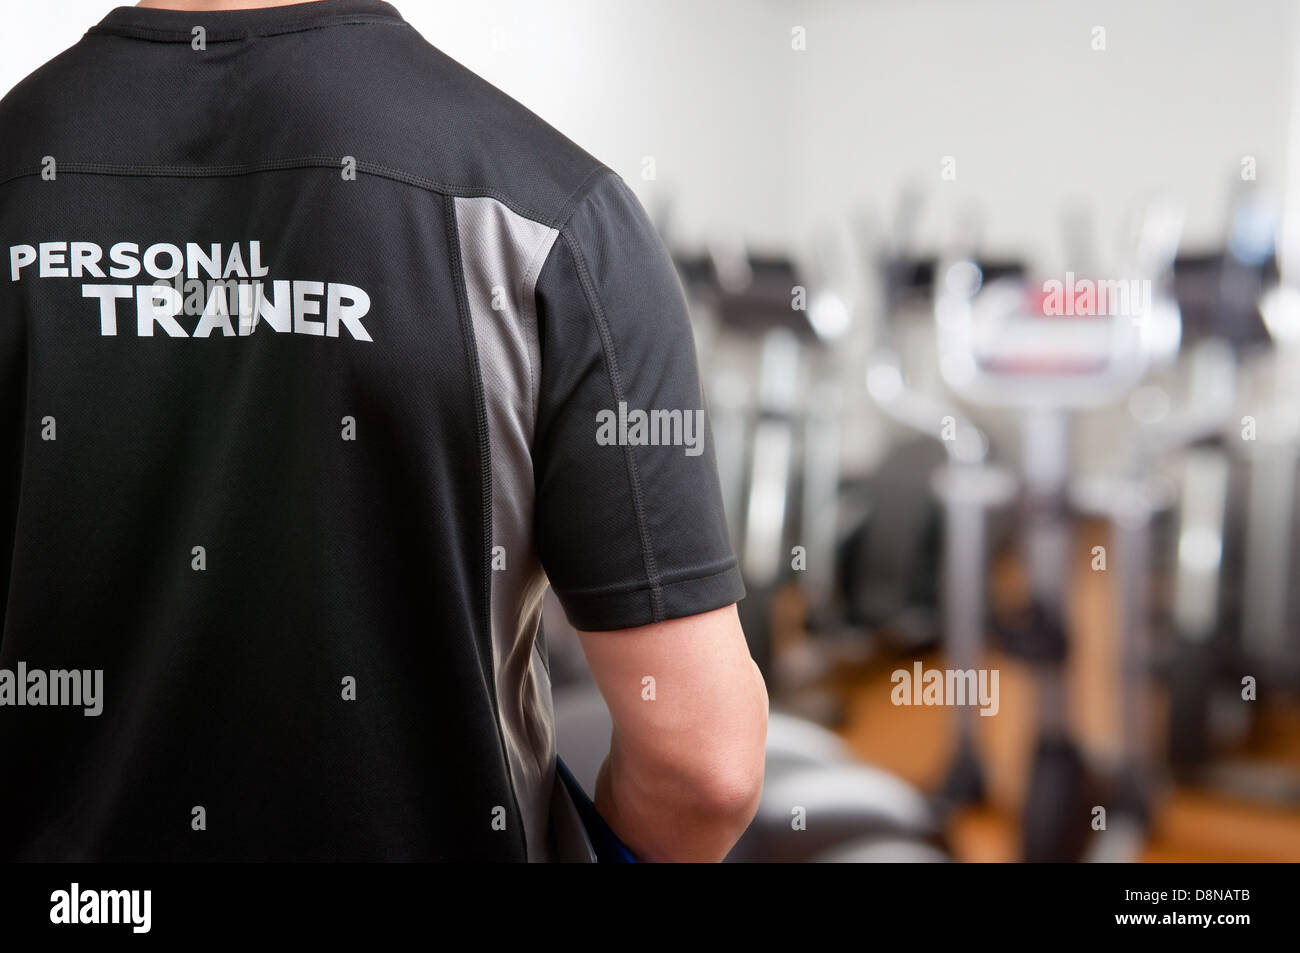 Personal Trainer, with his back facing the camera, looking at a gym - Stock Image